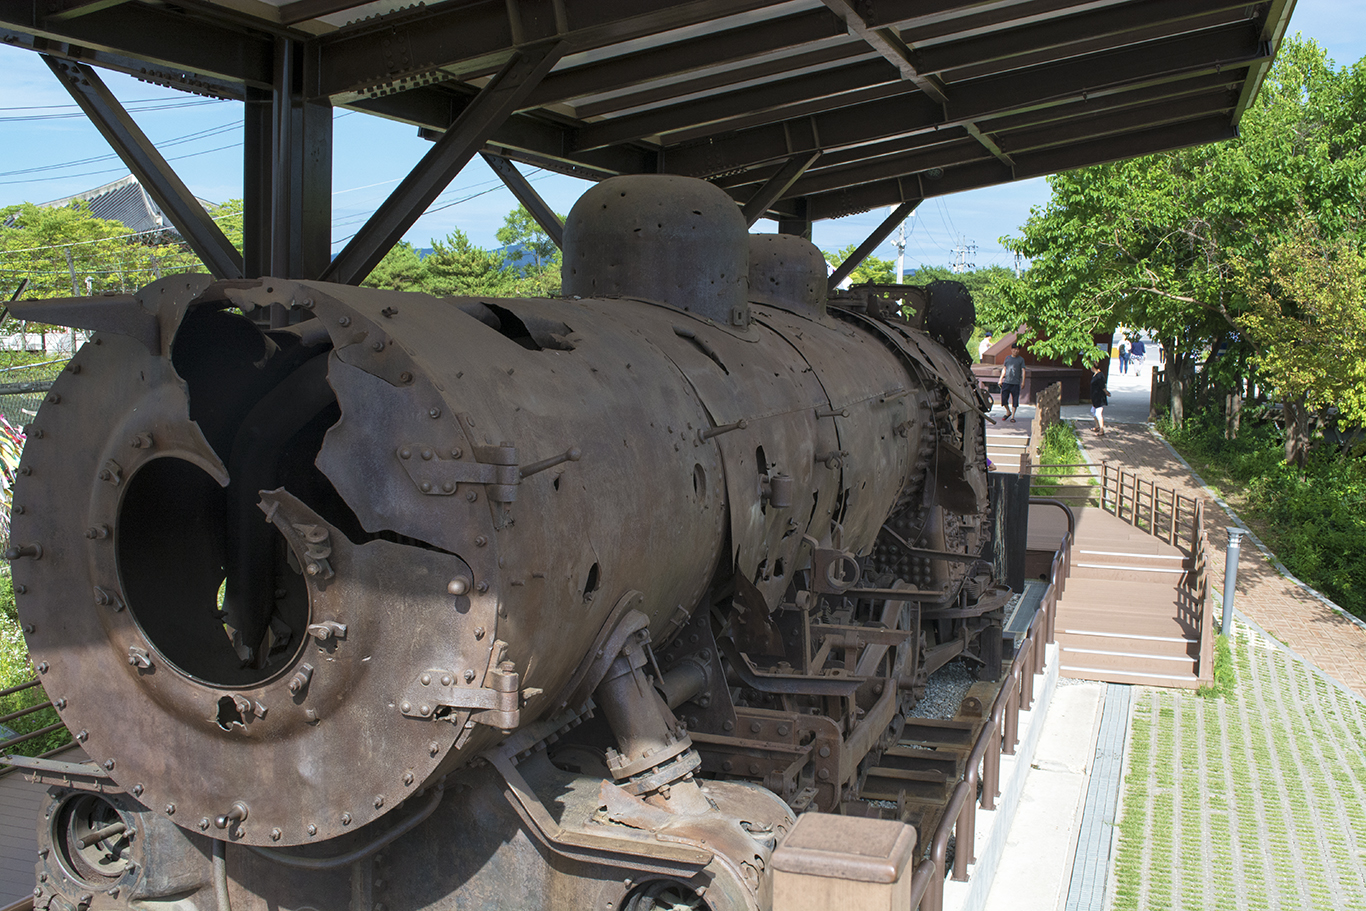 The wreckage of a South Korean logistics train from the Korean War on display at Imjingak just outside the Korean DMZ. The train was severely damaged by communist insurgents during its final journey. (CHRISTOPHER CAMERON/THE STATESMAN)